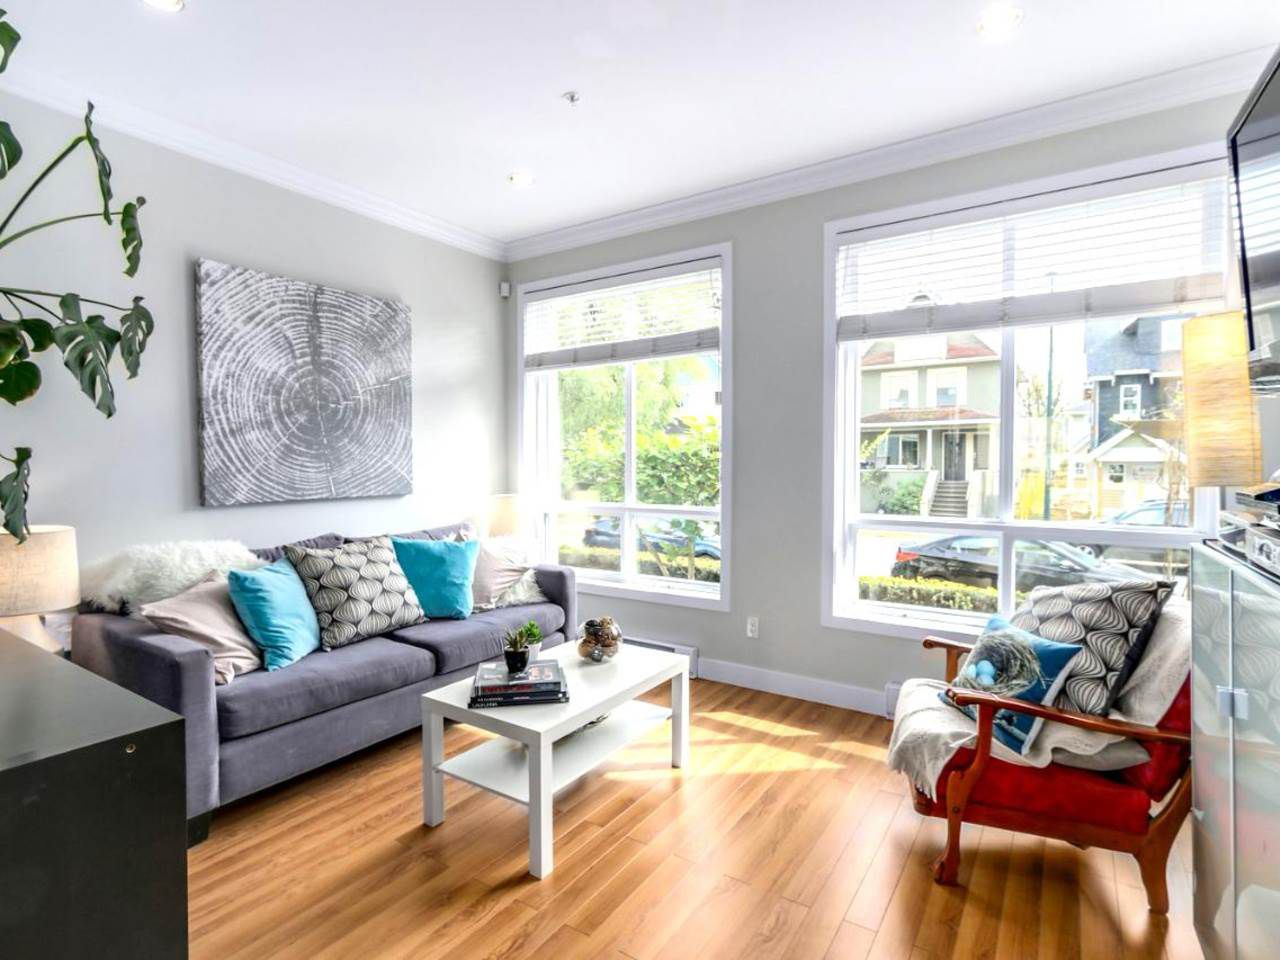 """Main Photo: 1017 E 20TH Avenue in Vancouver: Fraser VE Townhouse for sale in """"Windsor Place"""" (Vancouver East)  : MLS®# R2059020"""